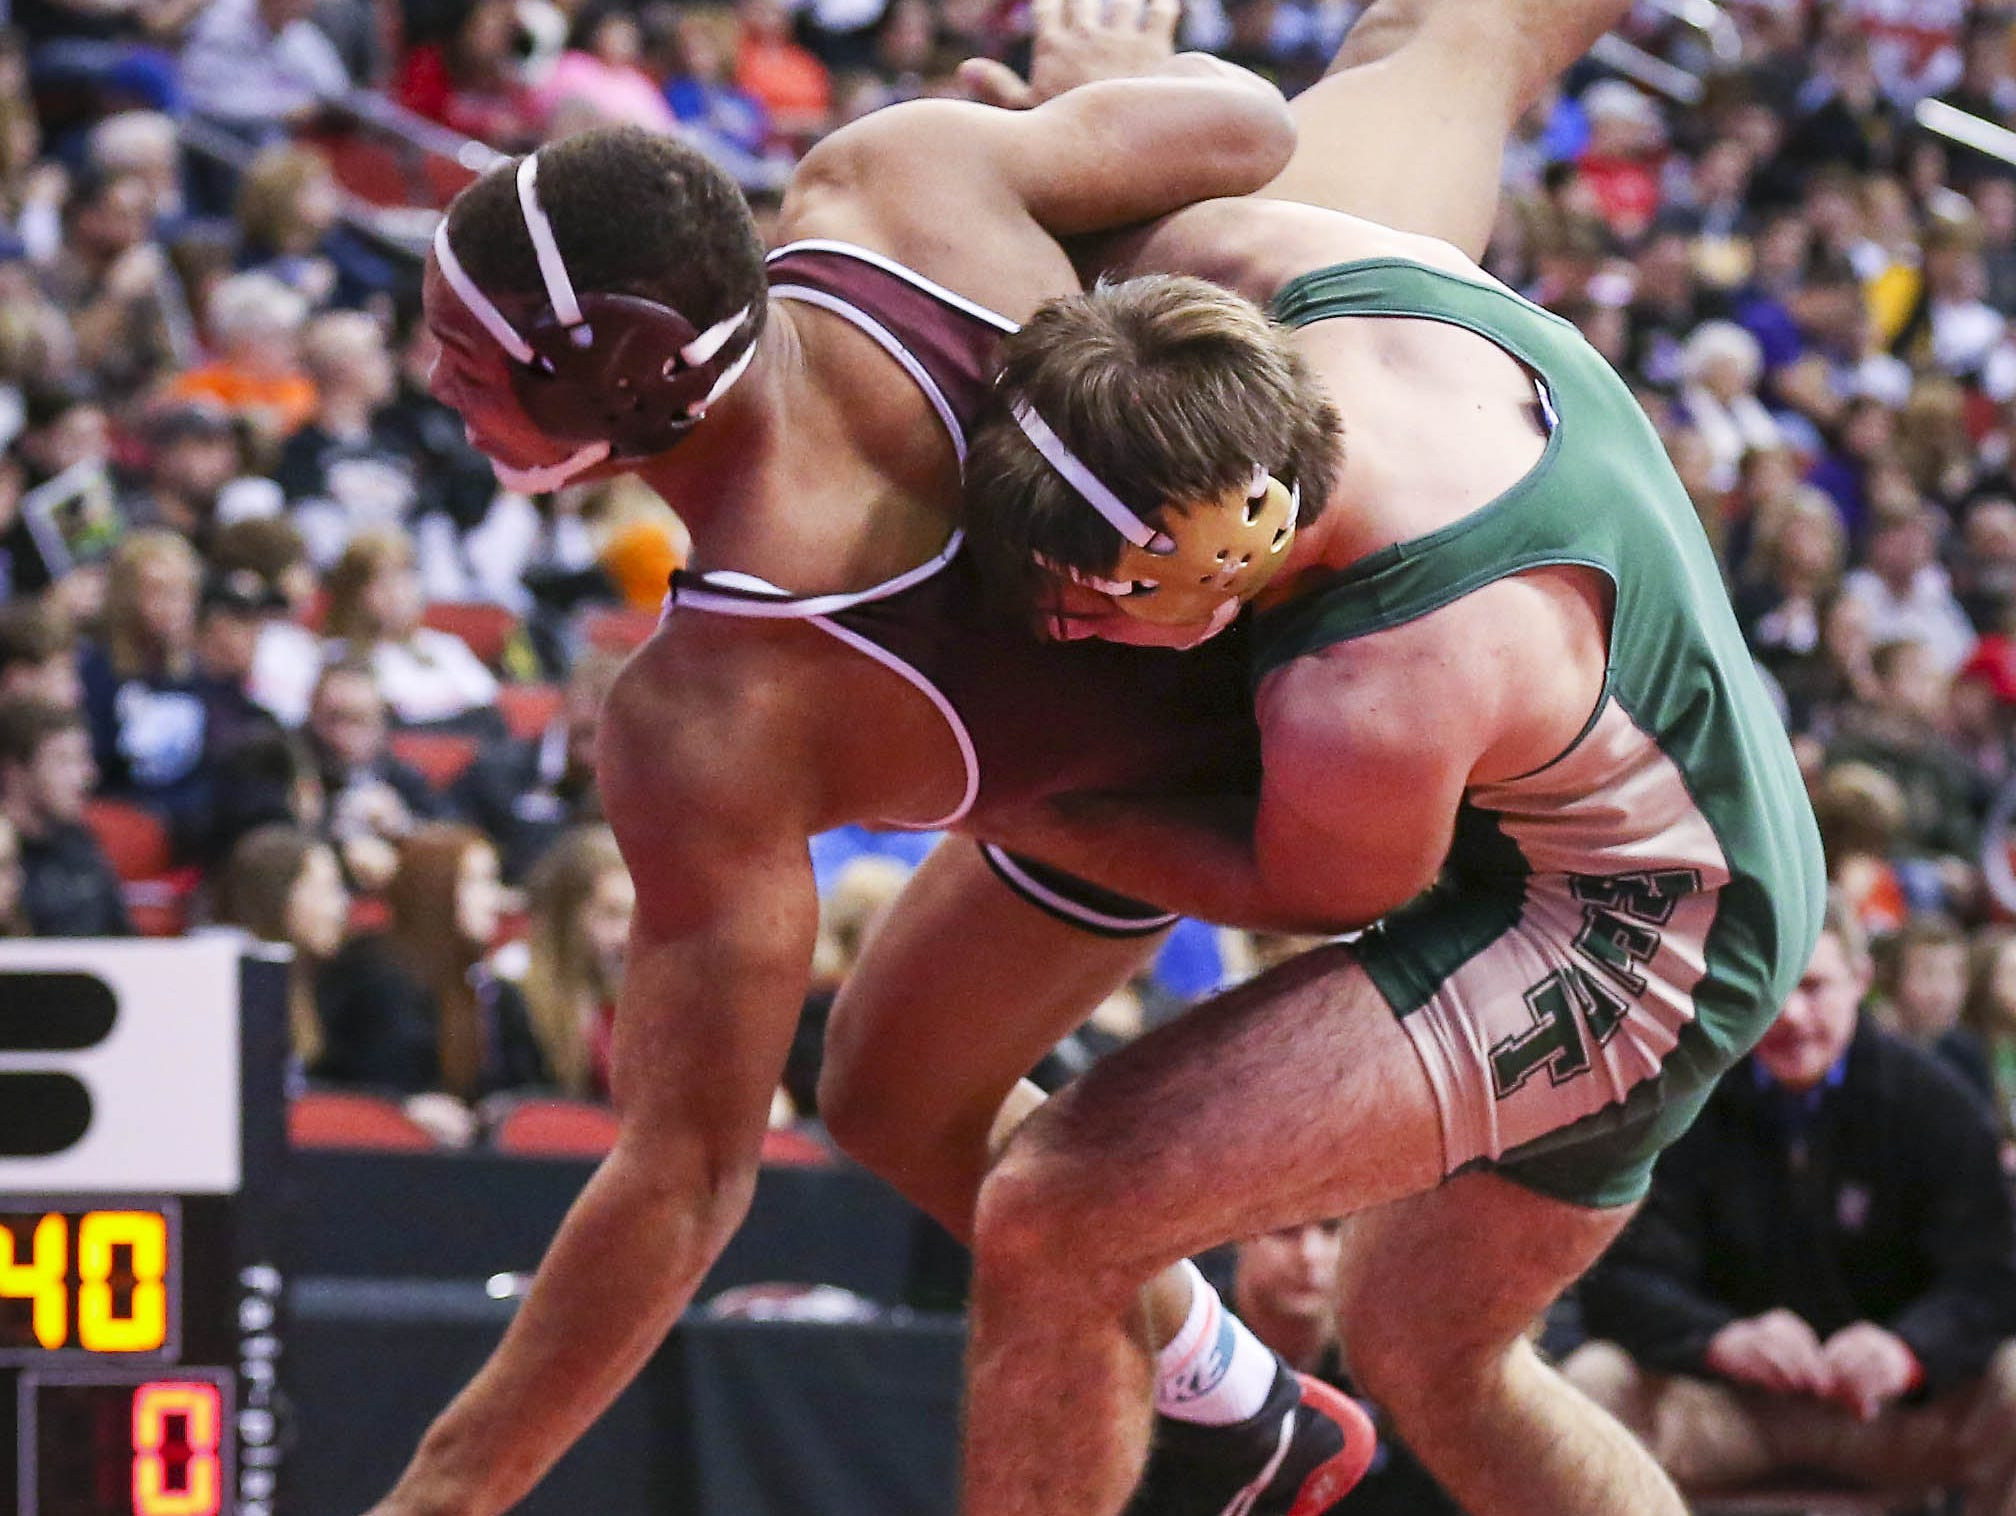 Donovan Doyle (Iowa City West), right, controls Jacob Zachary (Dowling Catholic, WDM) during their 182lbs Class 3A first round match during the 2015 state wrestling championships Thursday Feb. 19, 2015, at Wells Fargo Arena in Des Moines, Iowa.